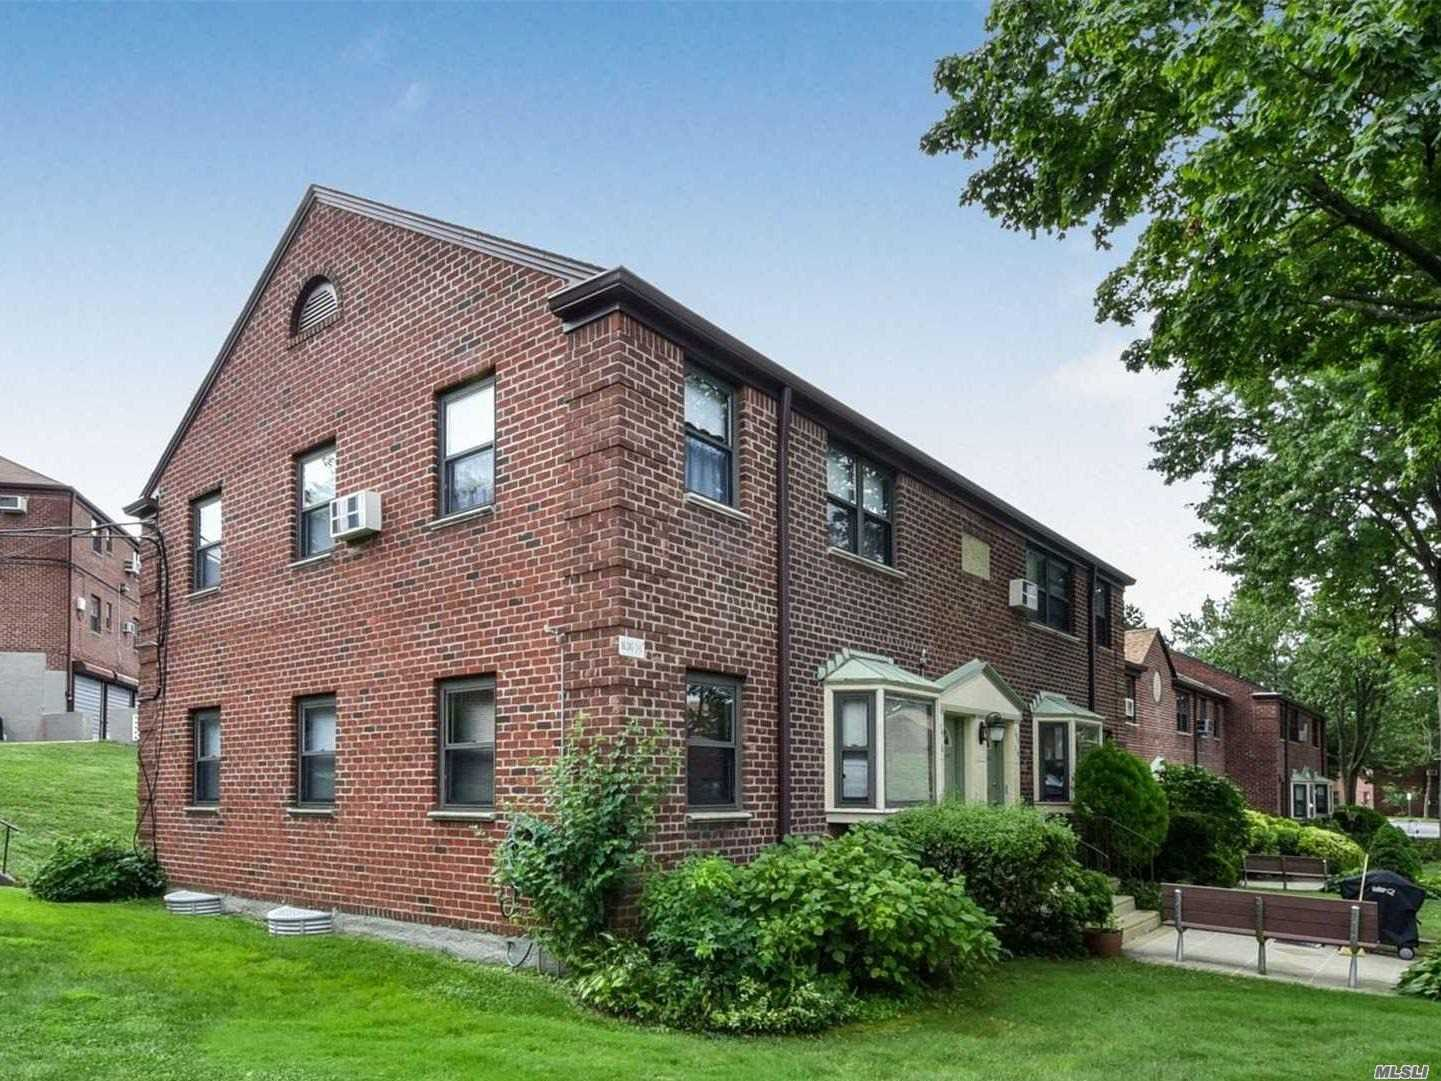 Bright 1Bedroom Corner Unit Apartment On 1st Floor! Renovated With Hardwood Floors, Crown Moldings & Bay Window. Washer /Dryer In Unit!! Maintenance Includes All Utilities!!! Near Highways & Public Transportation